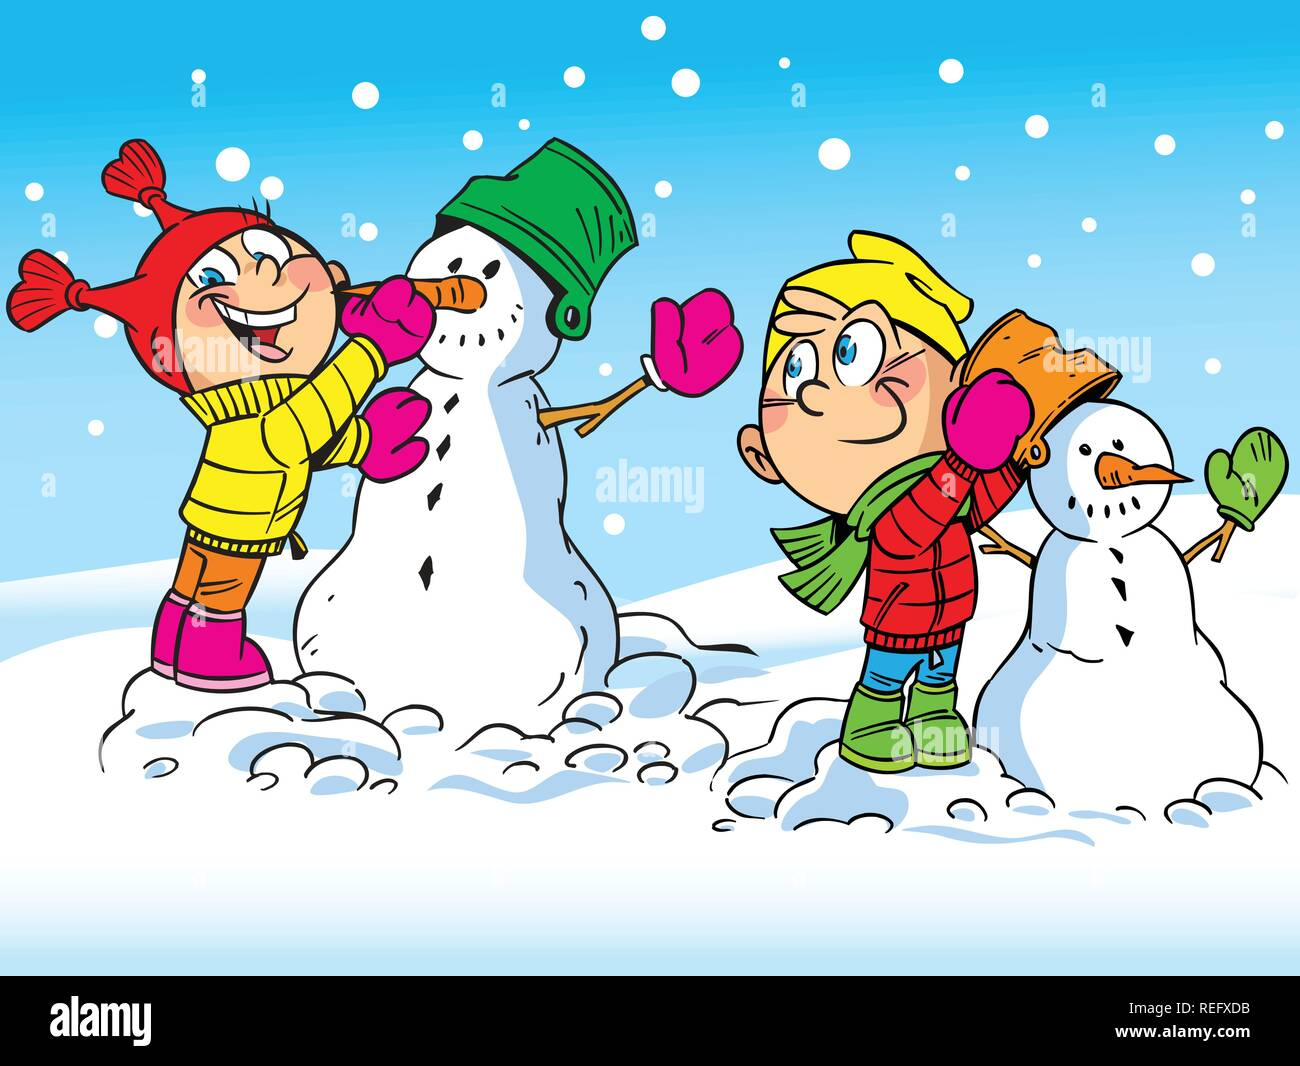 The illustration shows a boy and girl who make a snowman. Illustration done in cartoon style. - Stock Vector